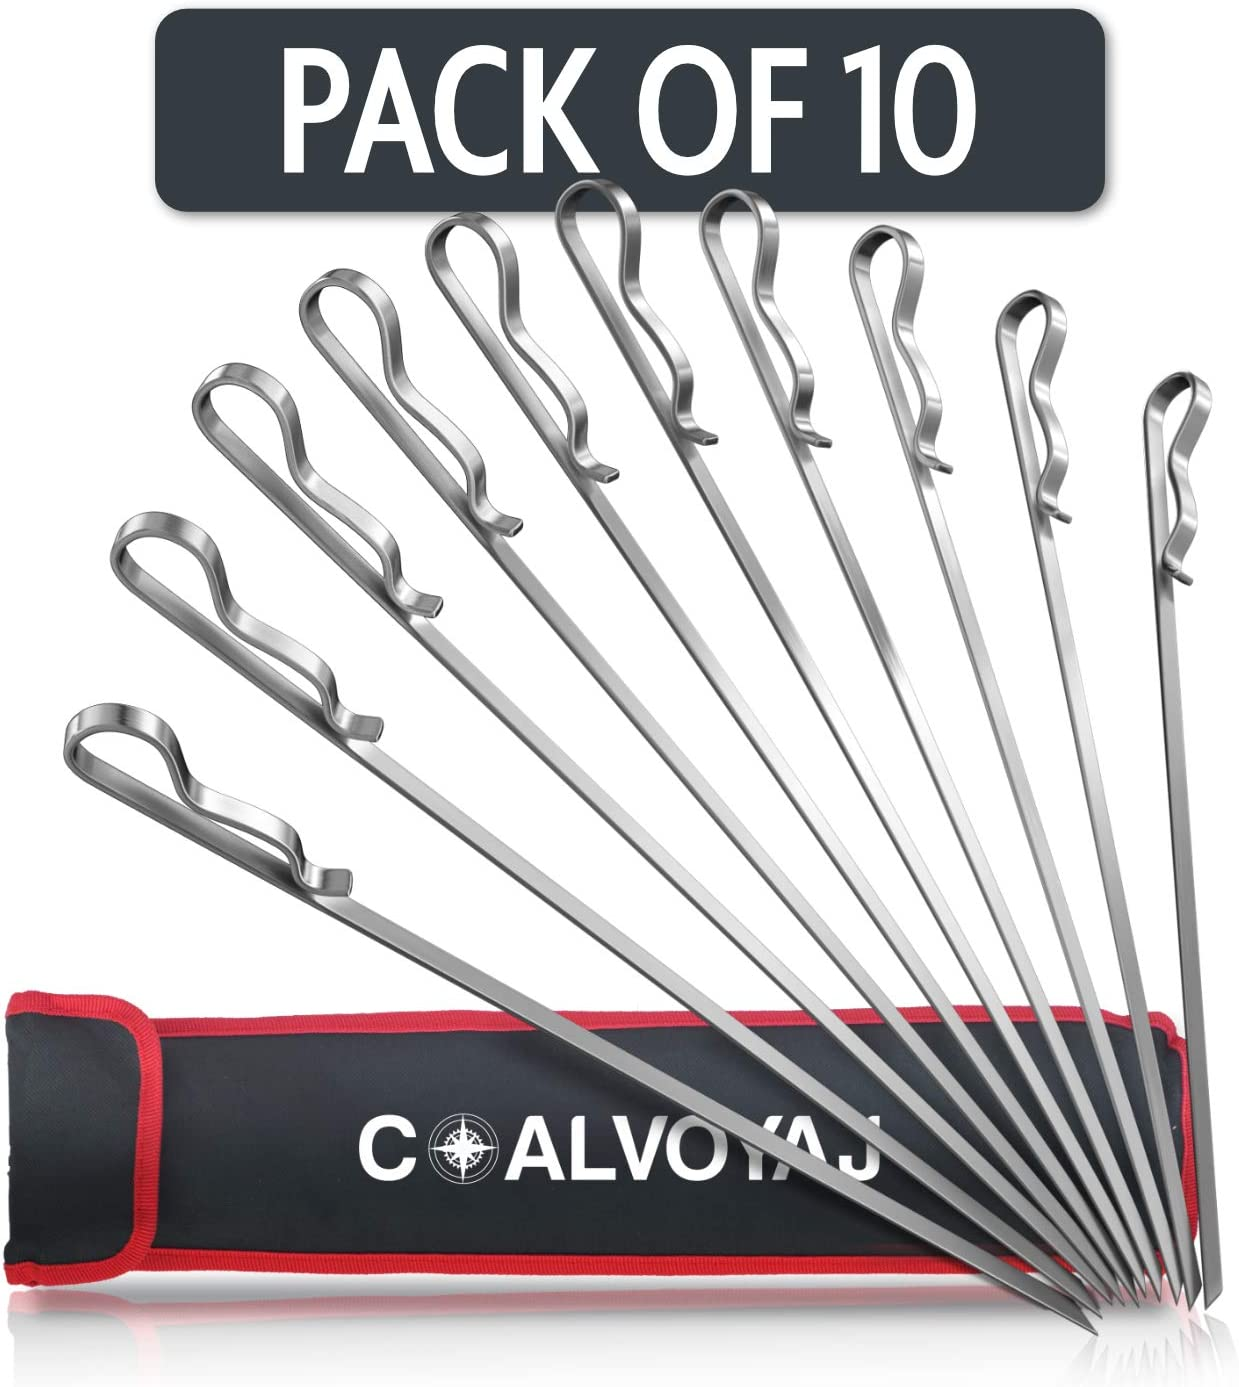 COALVOYAJ 17 Inch Flat Skewers for Grilling – Pack of 10 Stainless Steel Reusable Sticks for Shish Kebob Vegetables Meat, BBQ Barbecue Kabob Skewers with Storage Bag